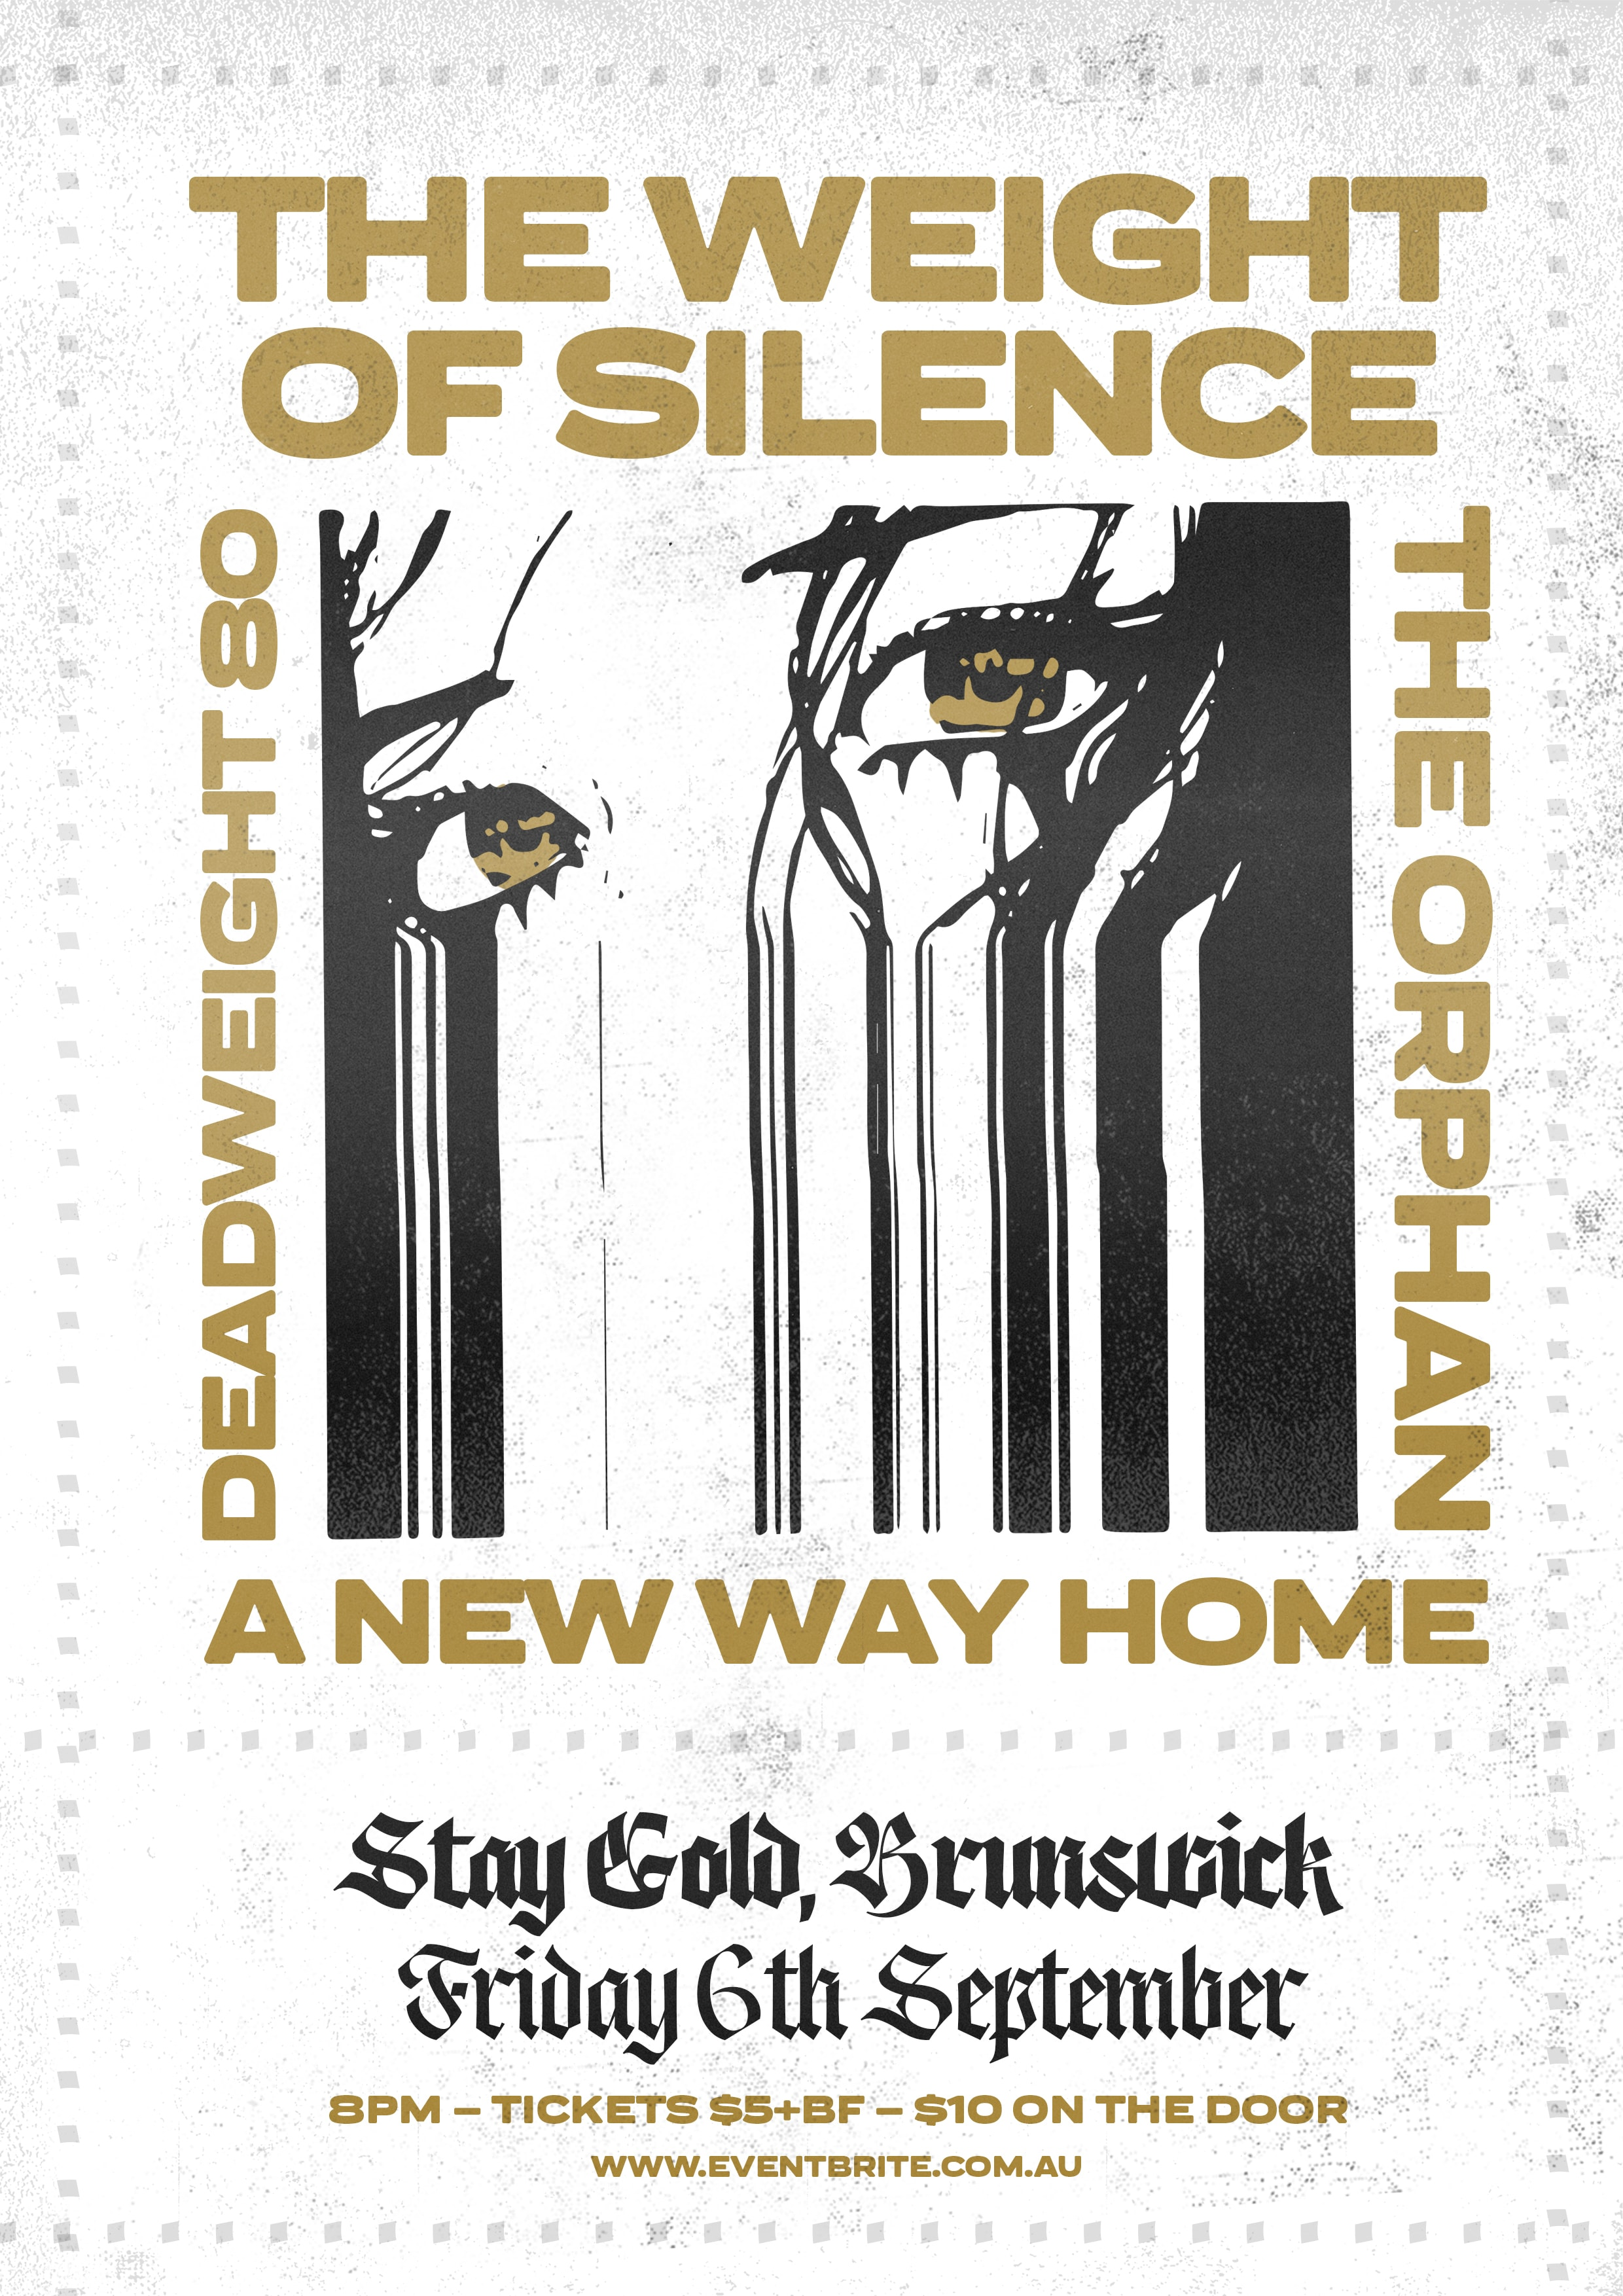 A New Way Home show poster